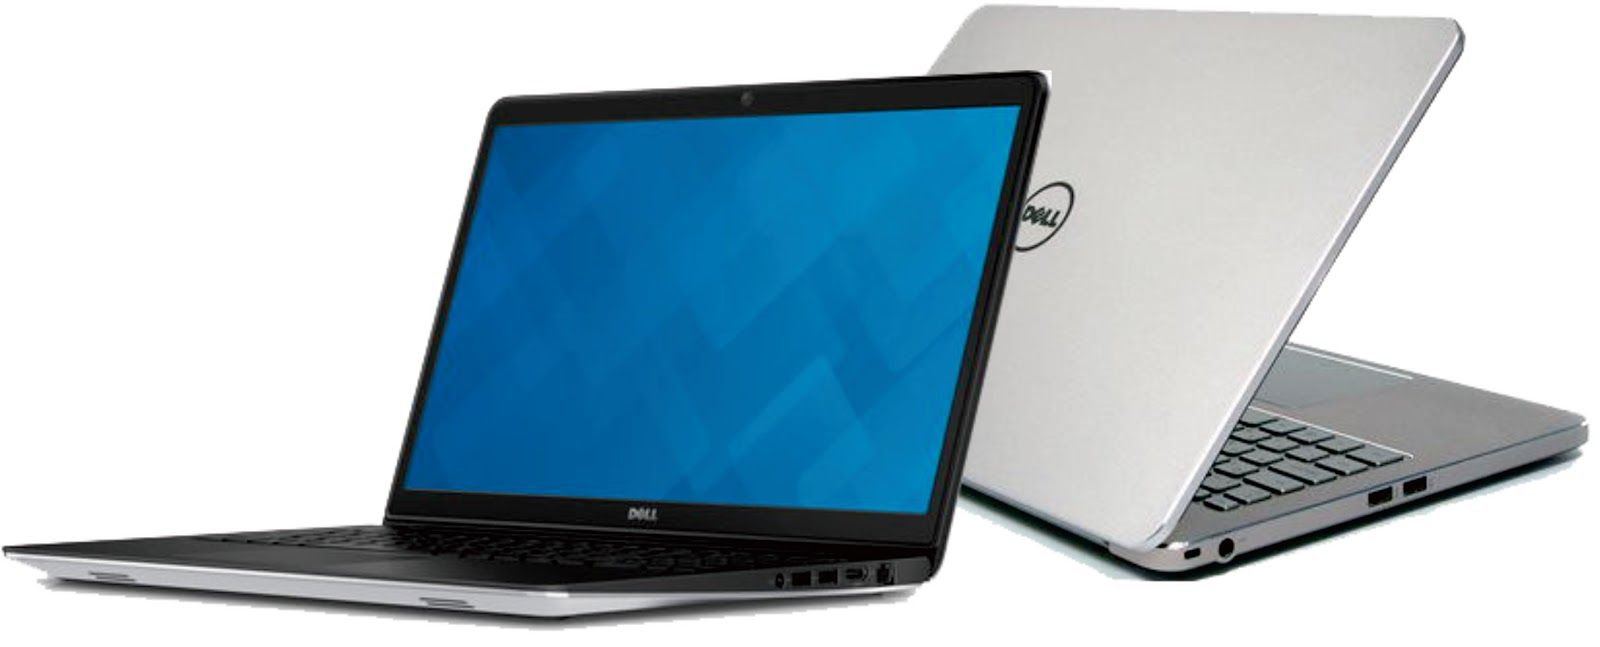 dell drivers inspiron 15 5559